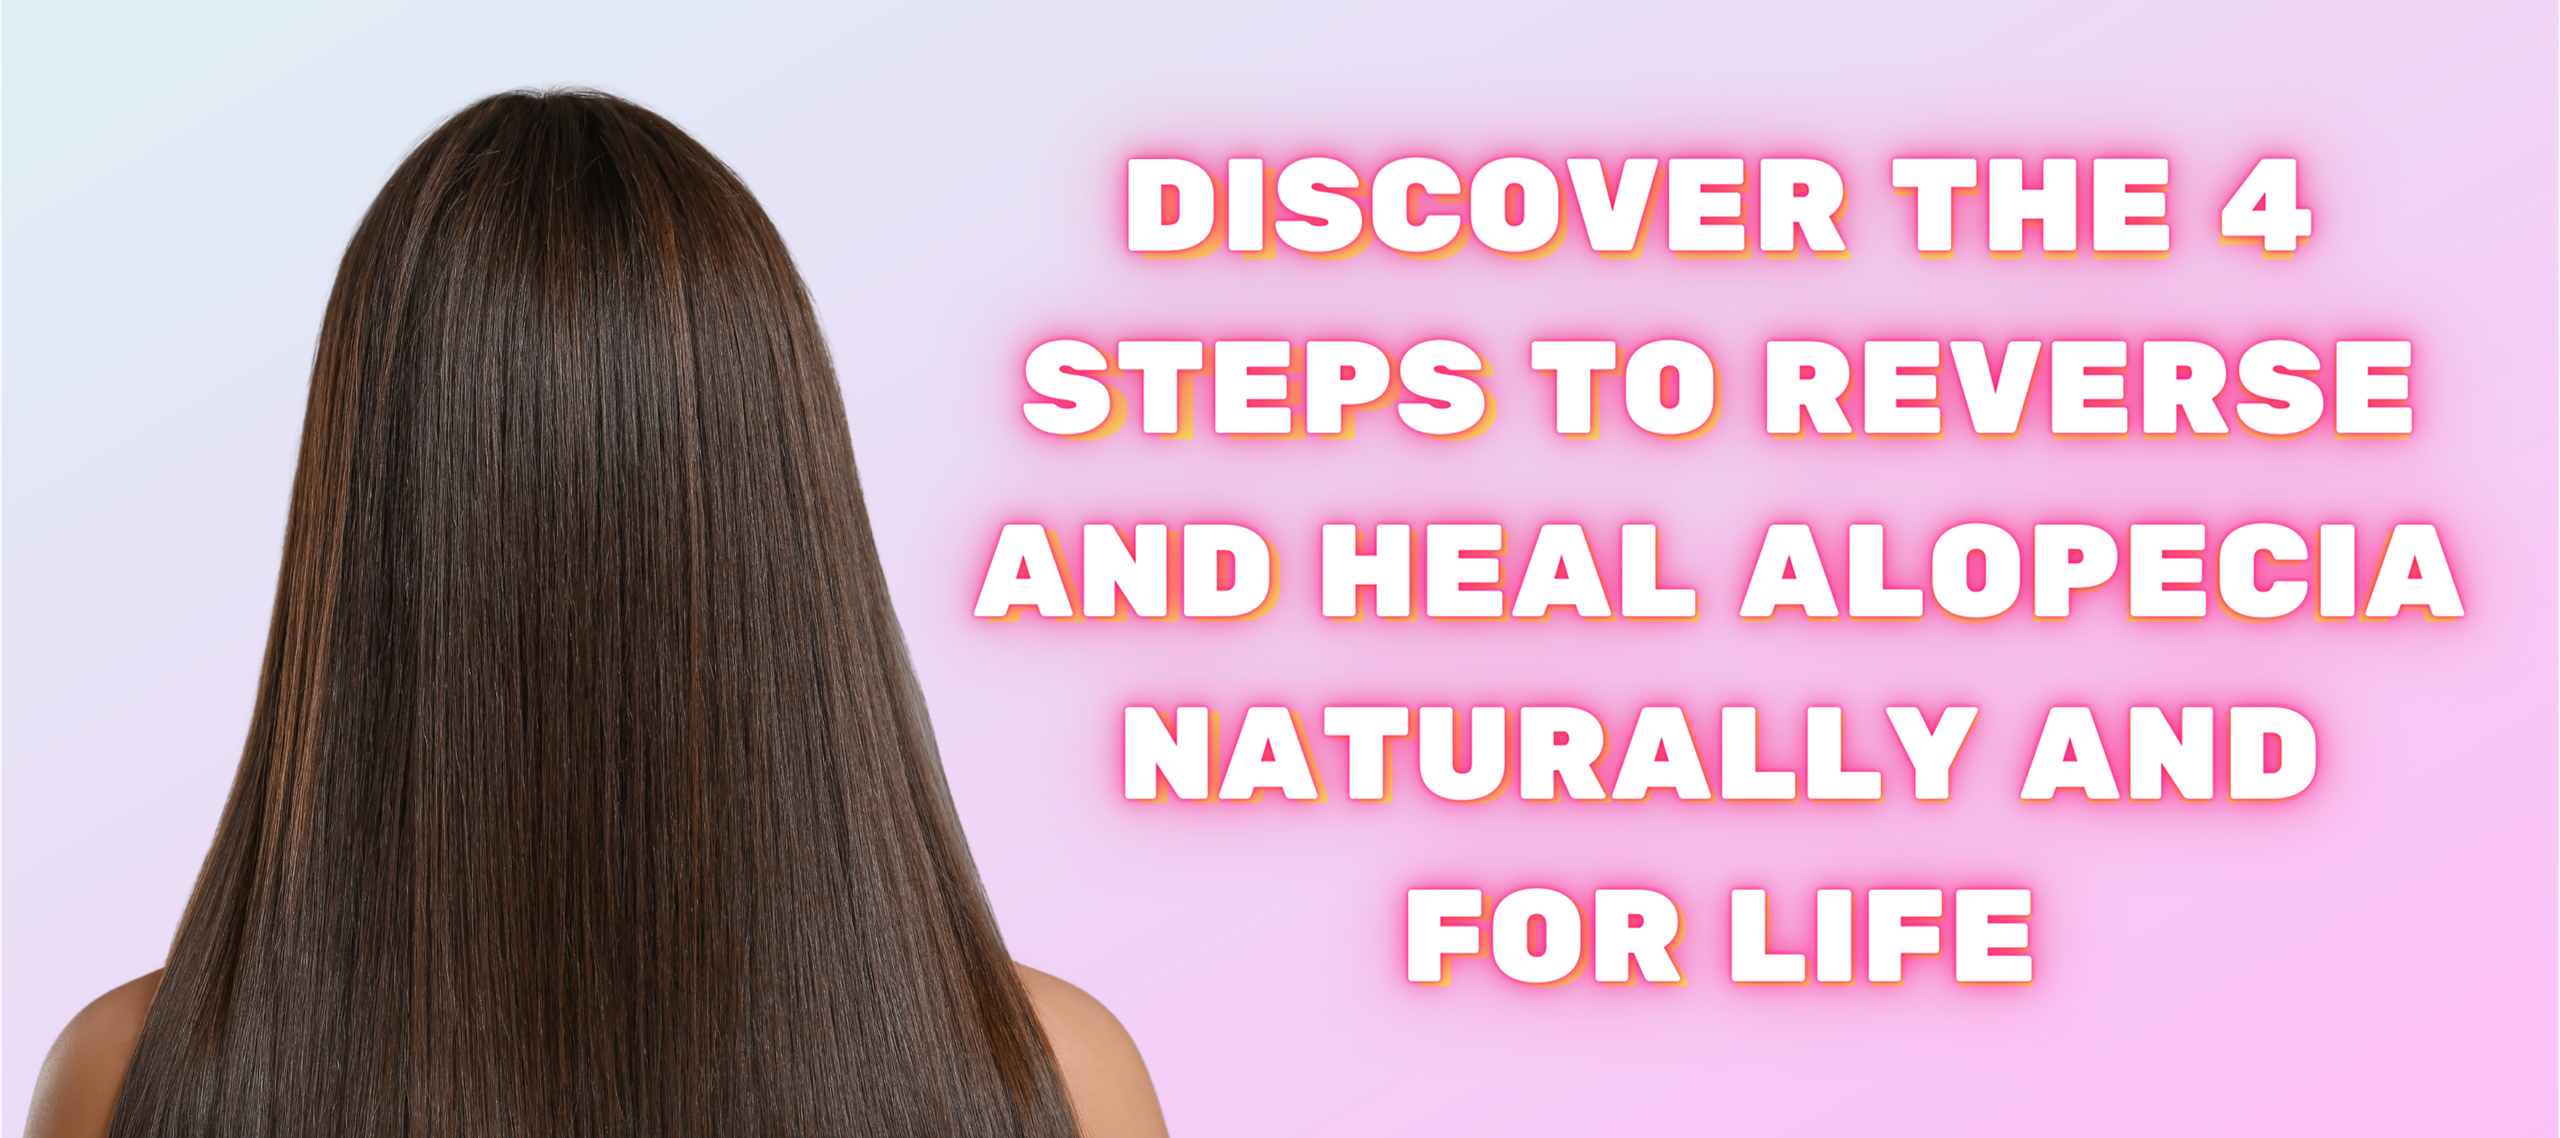 Discover the 4 steps to reverse and heal alopecia naturally and for goof. Free-Part Live Training.